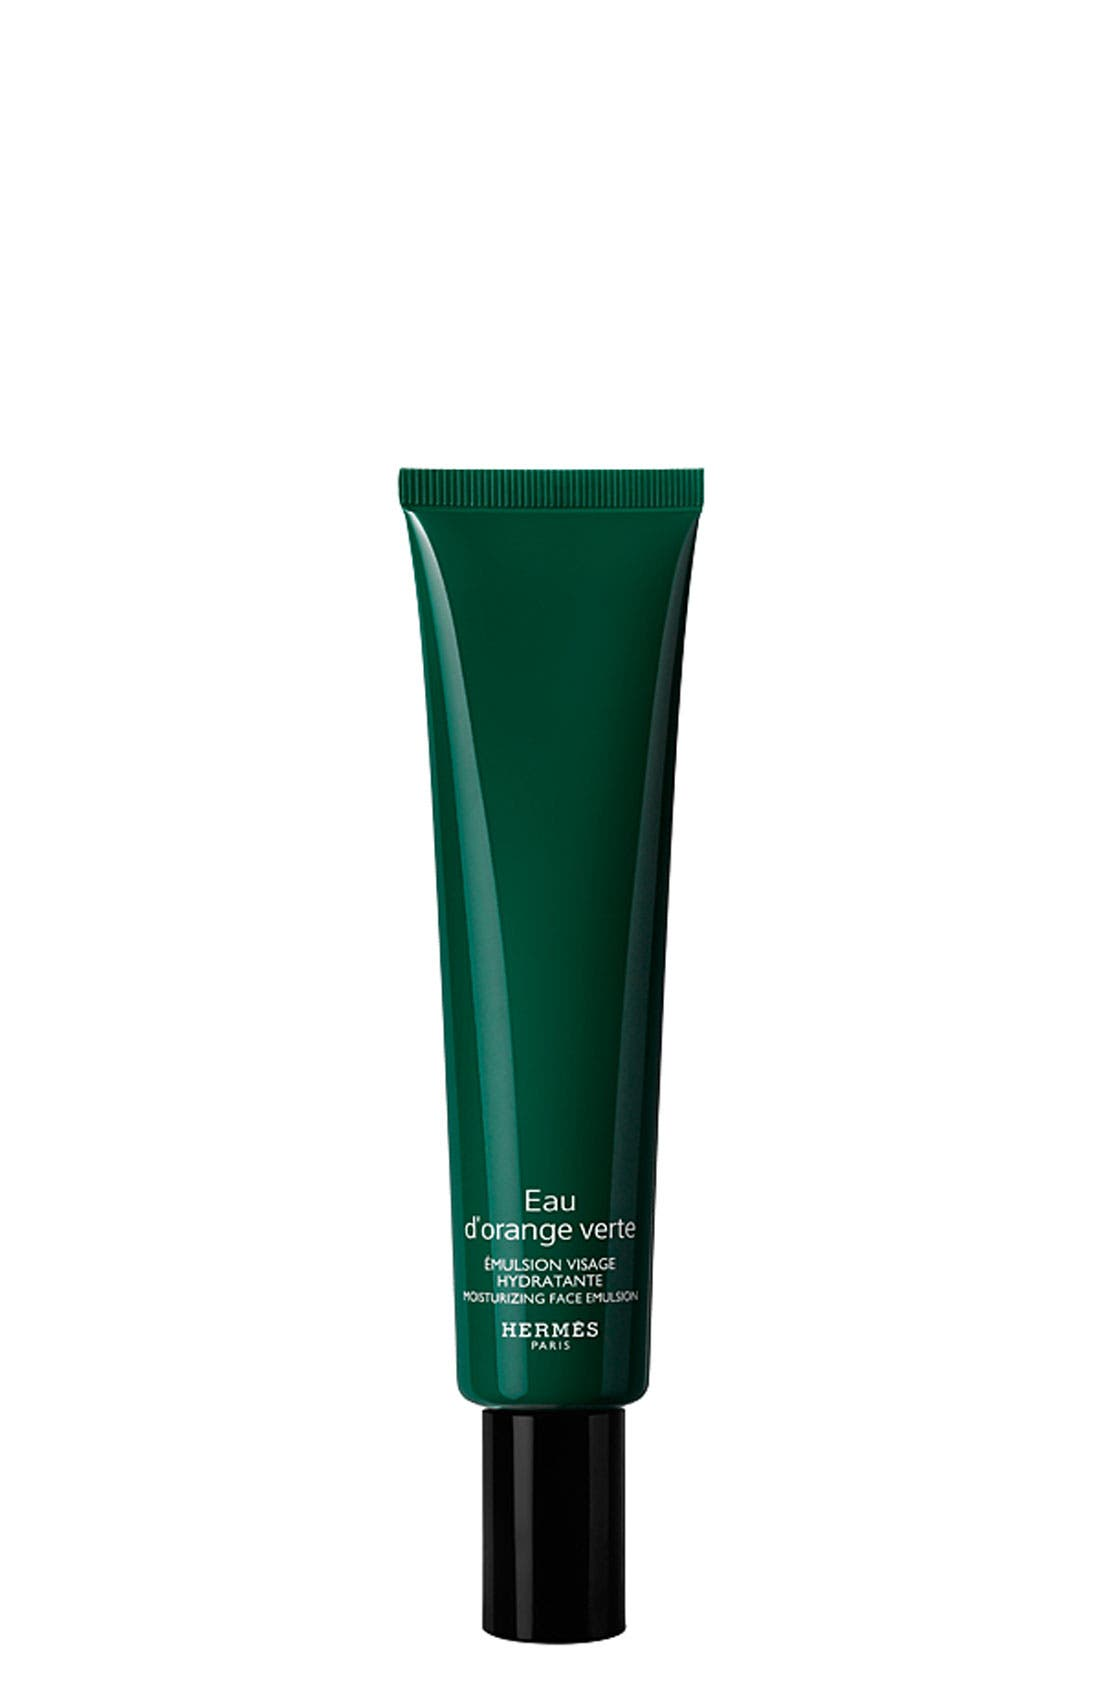 Eau d'orange verte - Moisturizing face emulsion,                         Main,                         color, NO COLOR